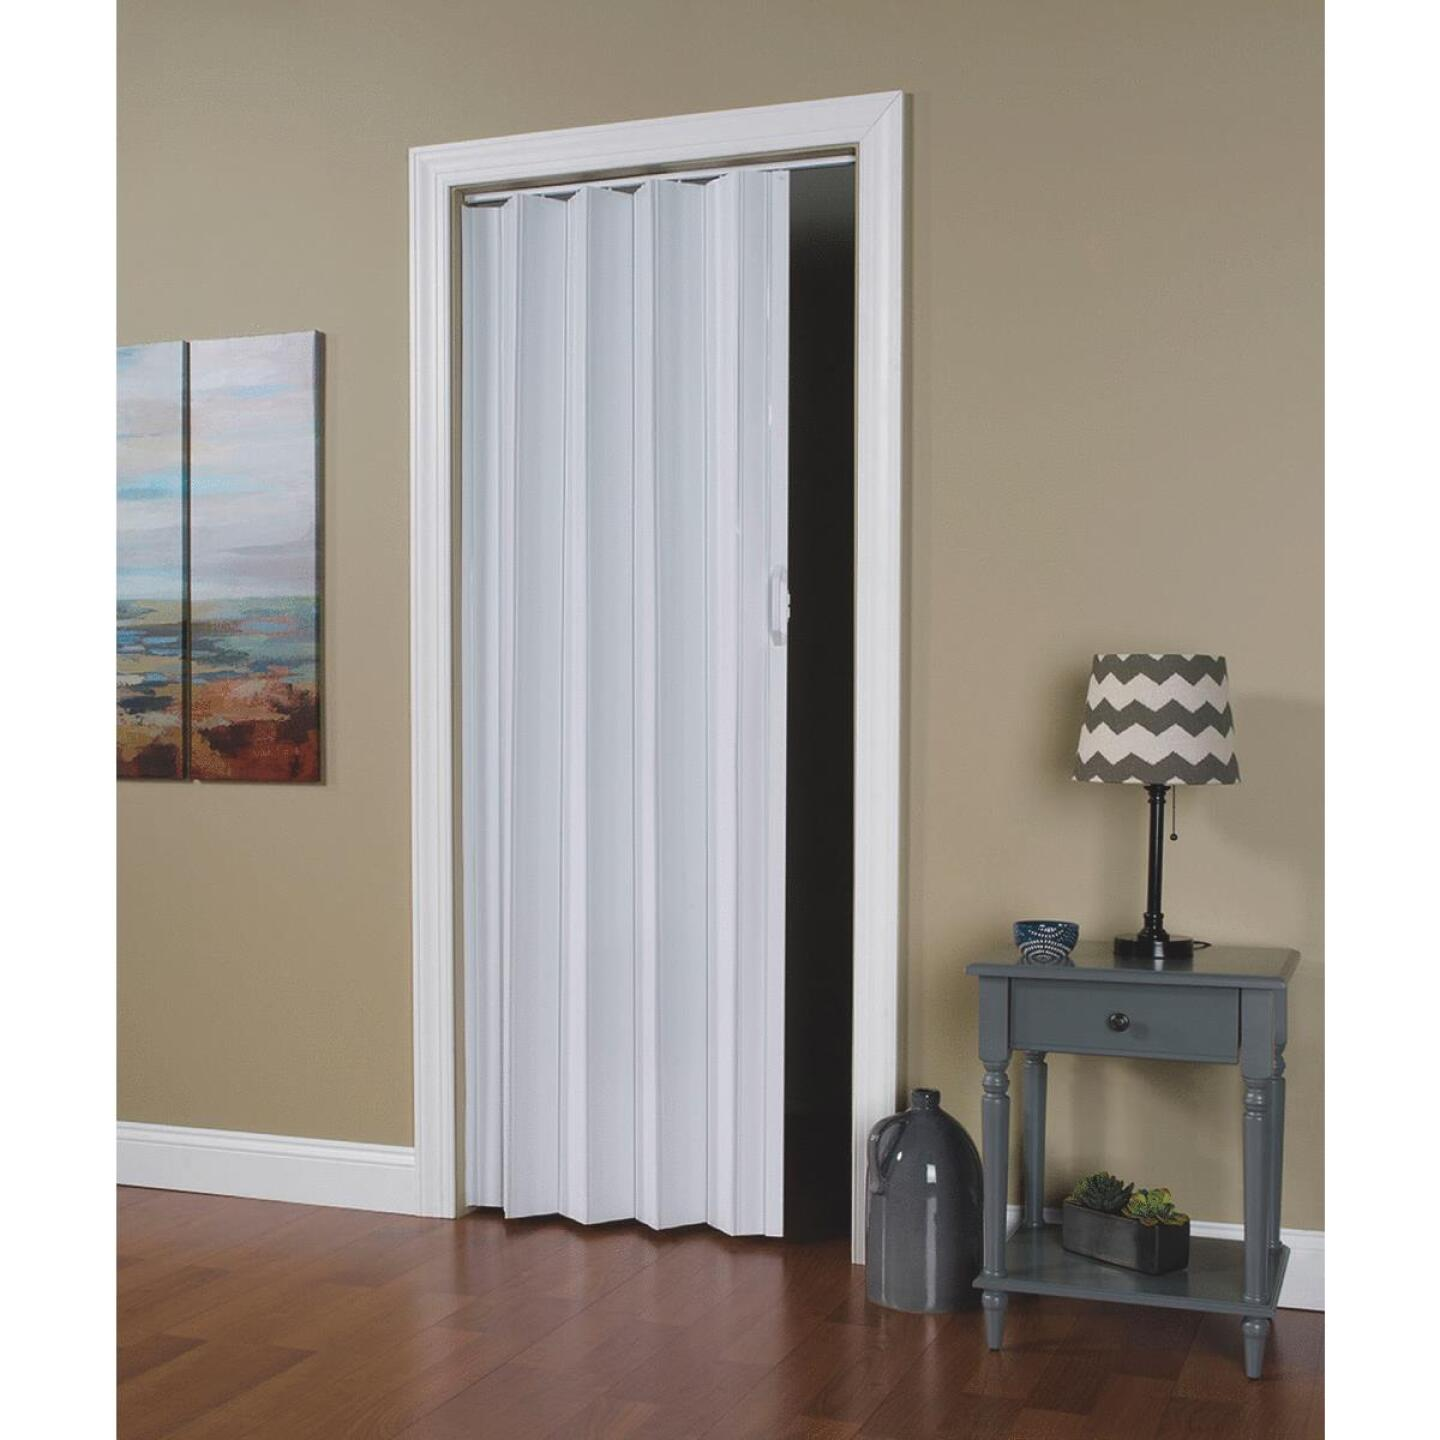 Spectrum Via 24 In. to 36 In. W. x 80 In. H. White Accordion Folding Door Image 1